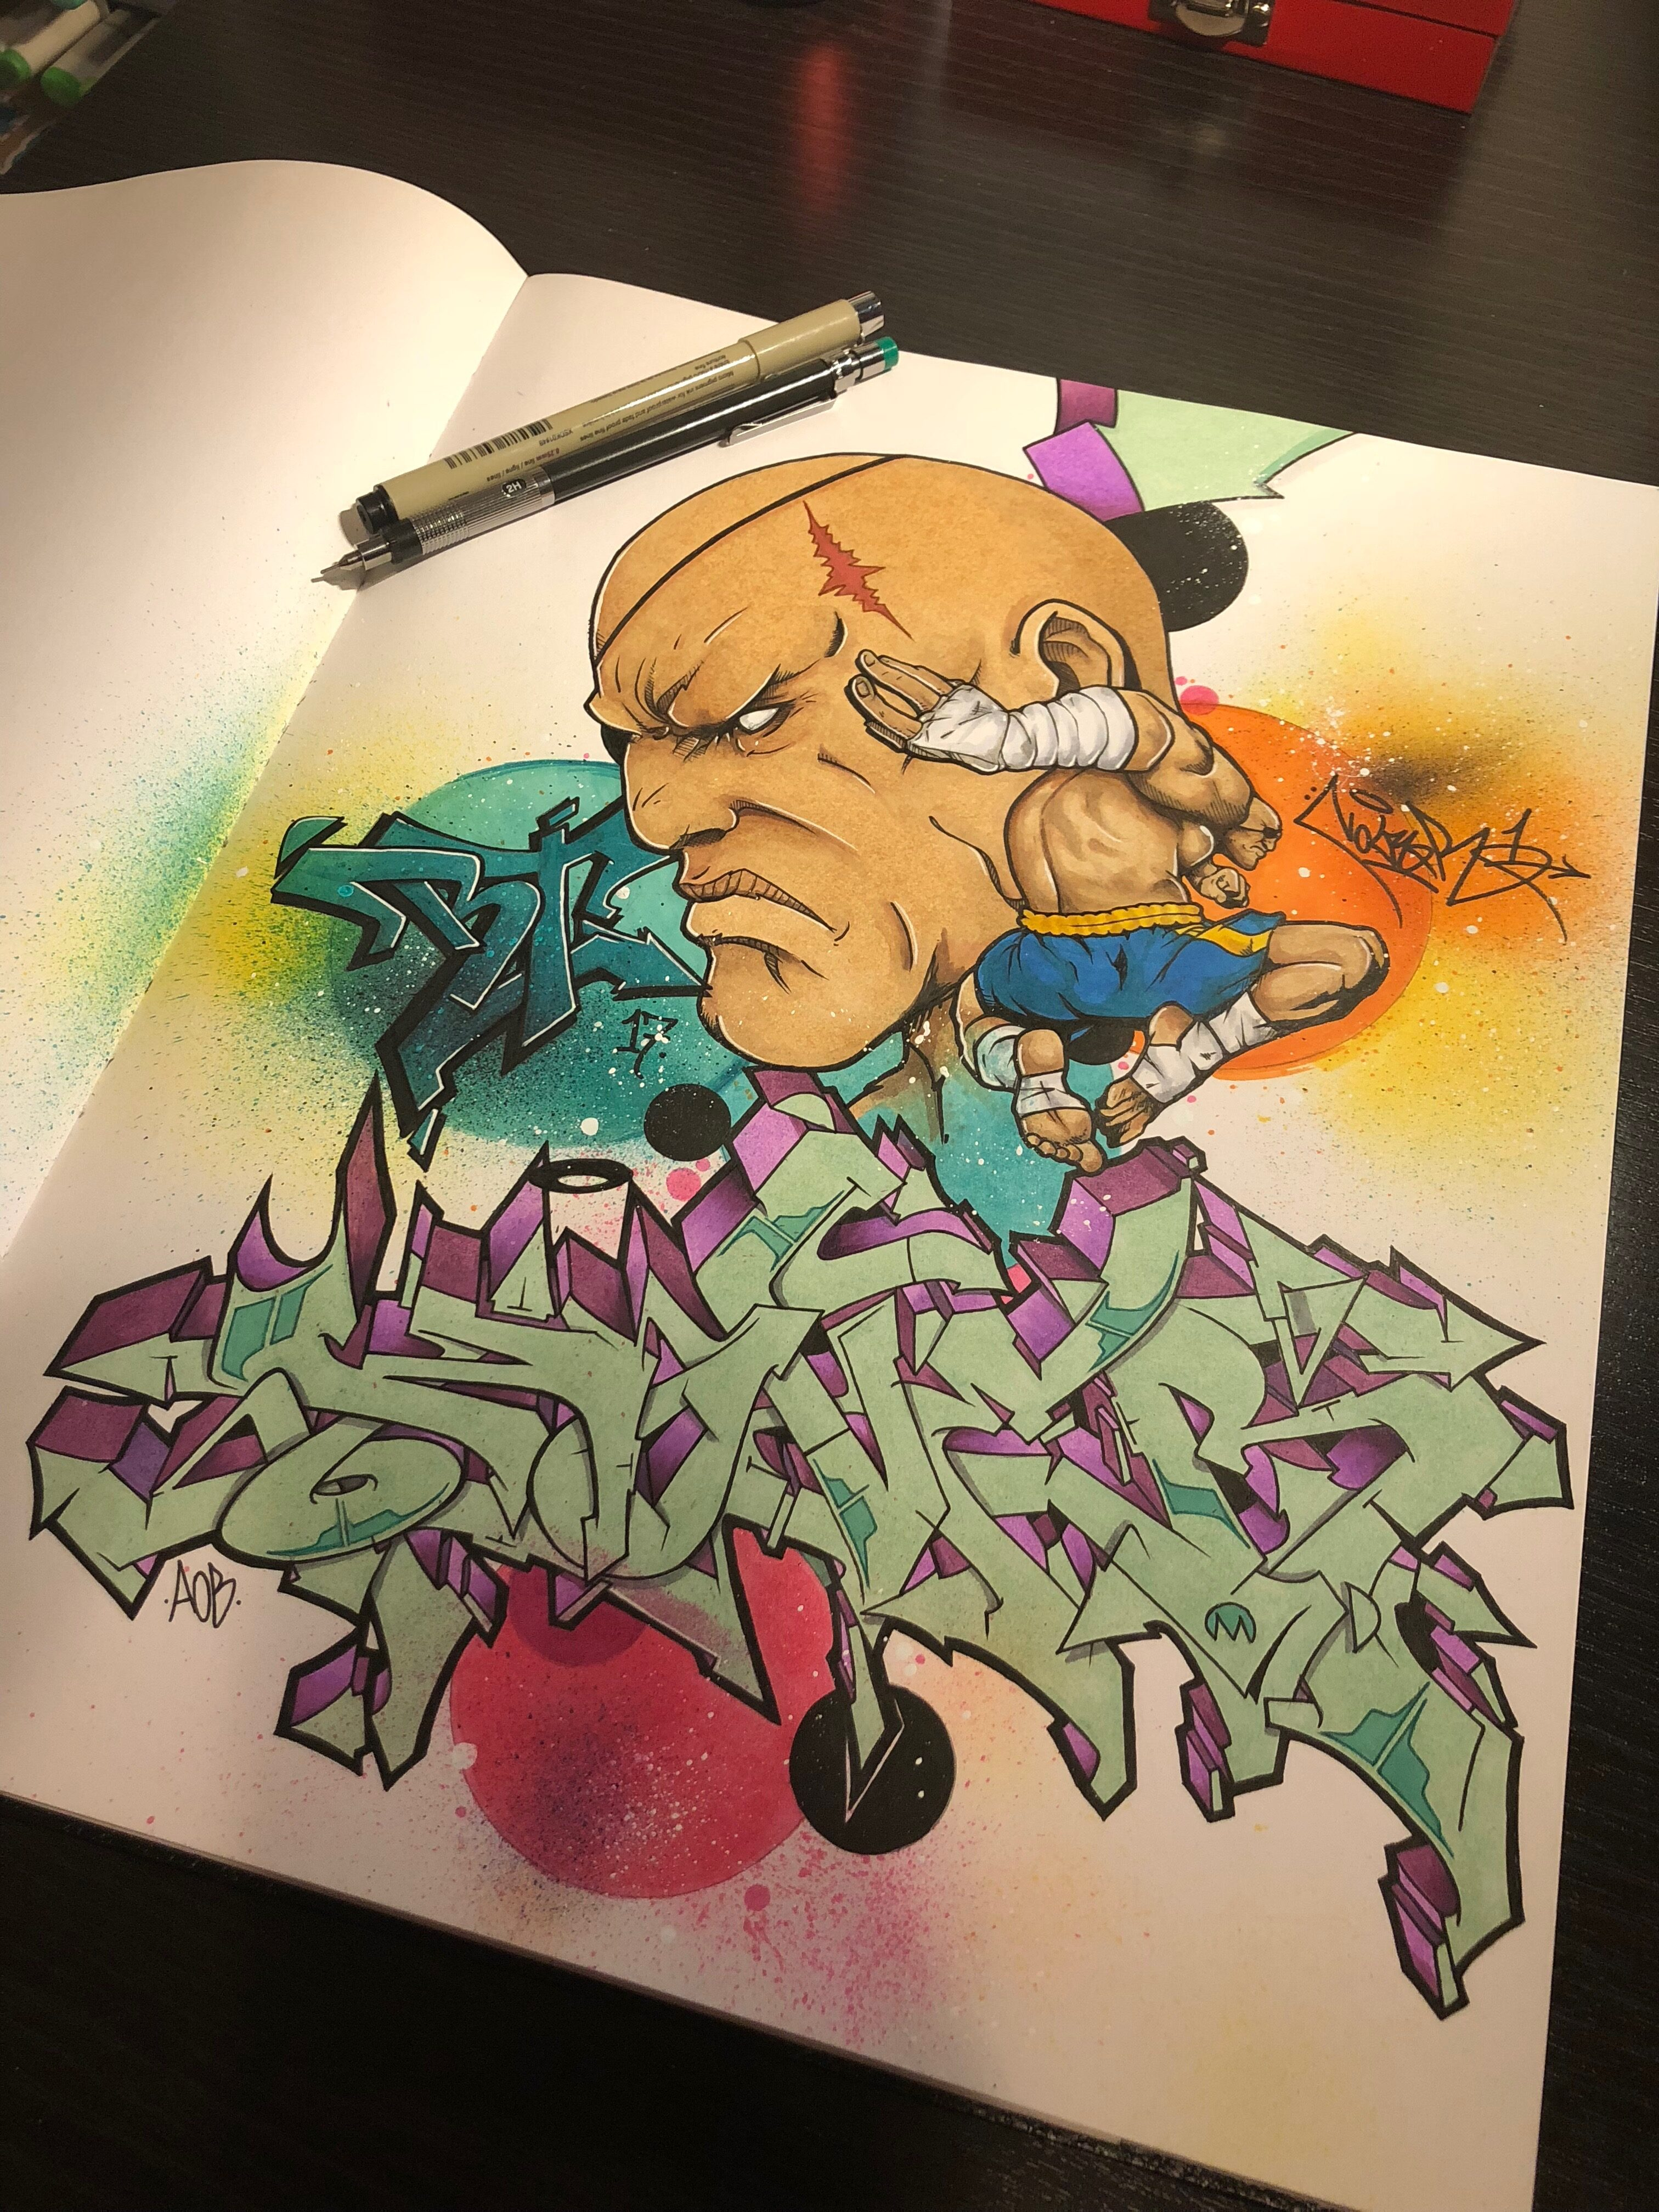 Sagat by Nover, Pens and Markers in Blackbook, 2017.